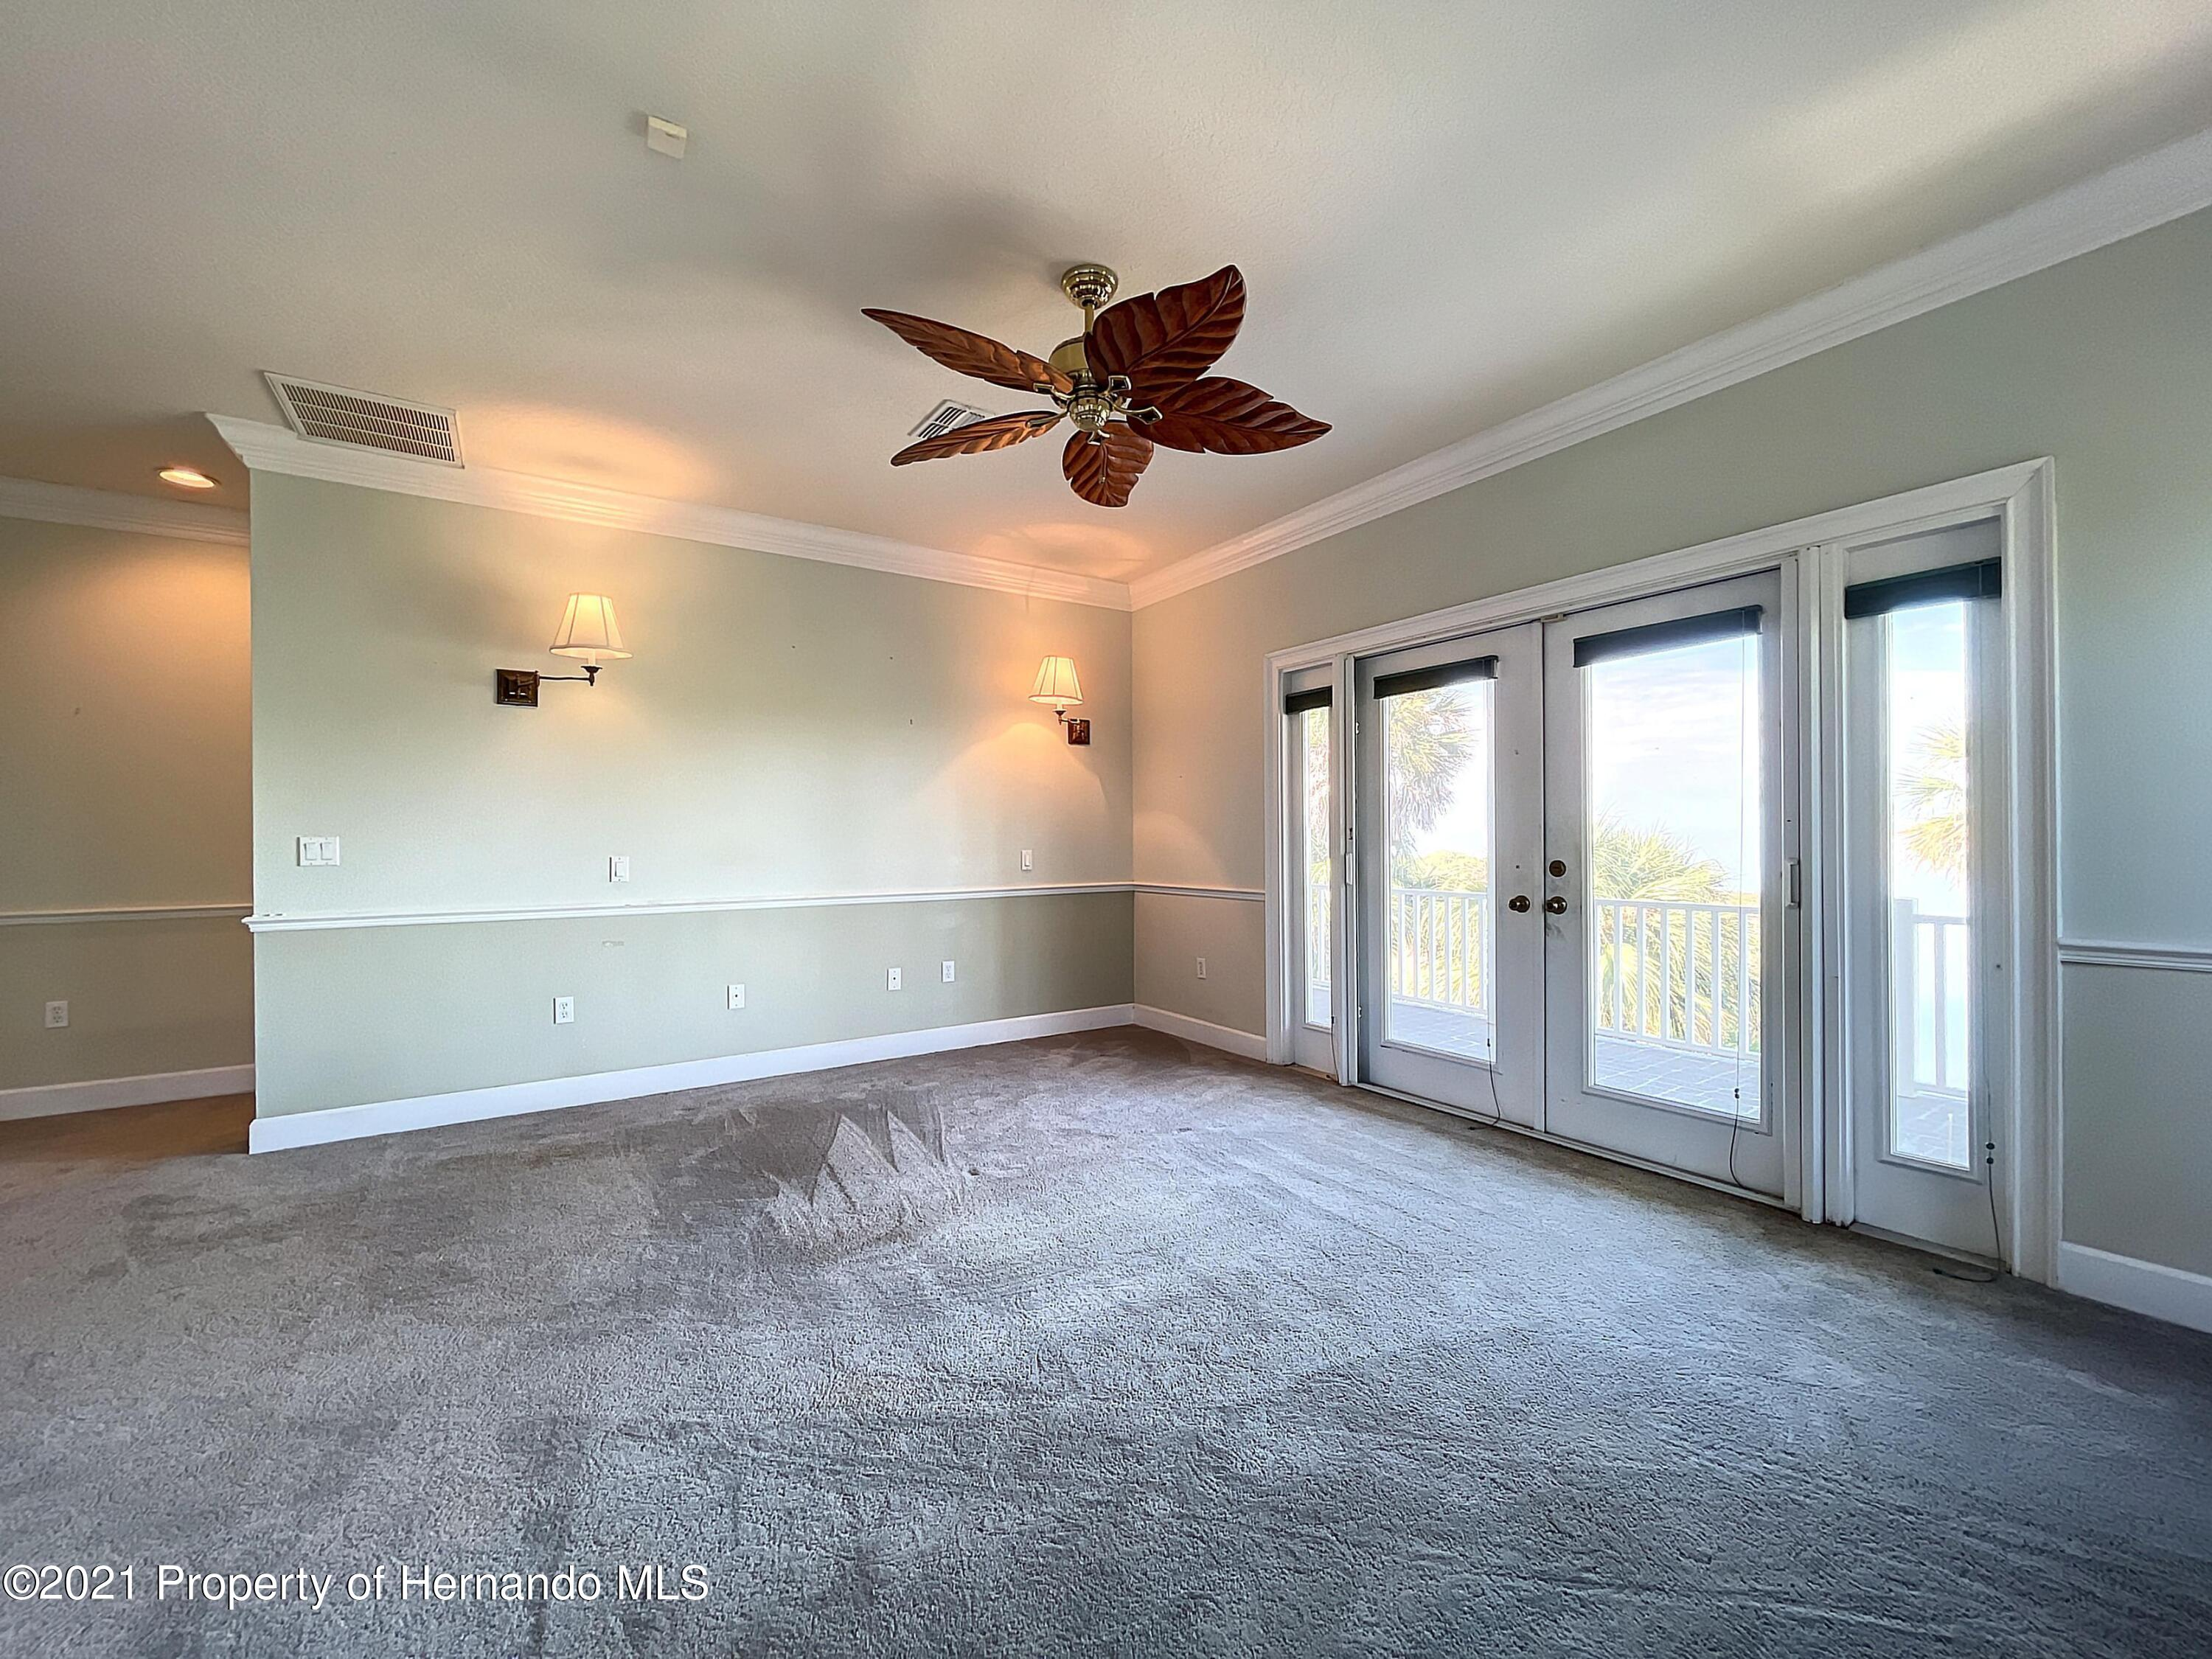 Image 31 of 101 For 1091 Osowaw Boulevard